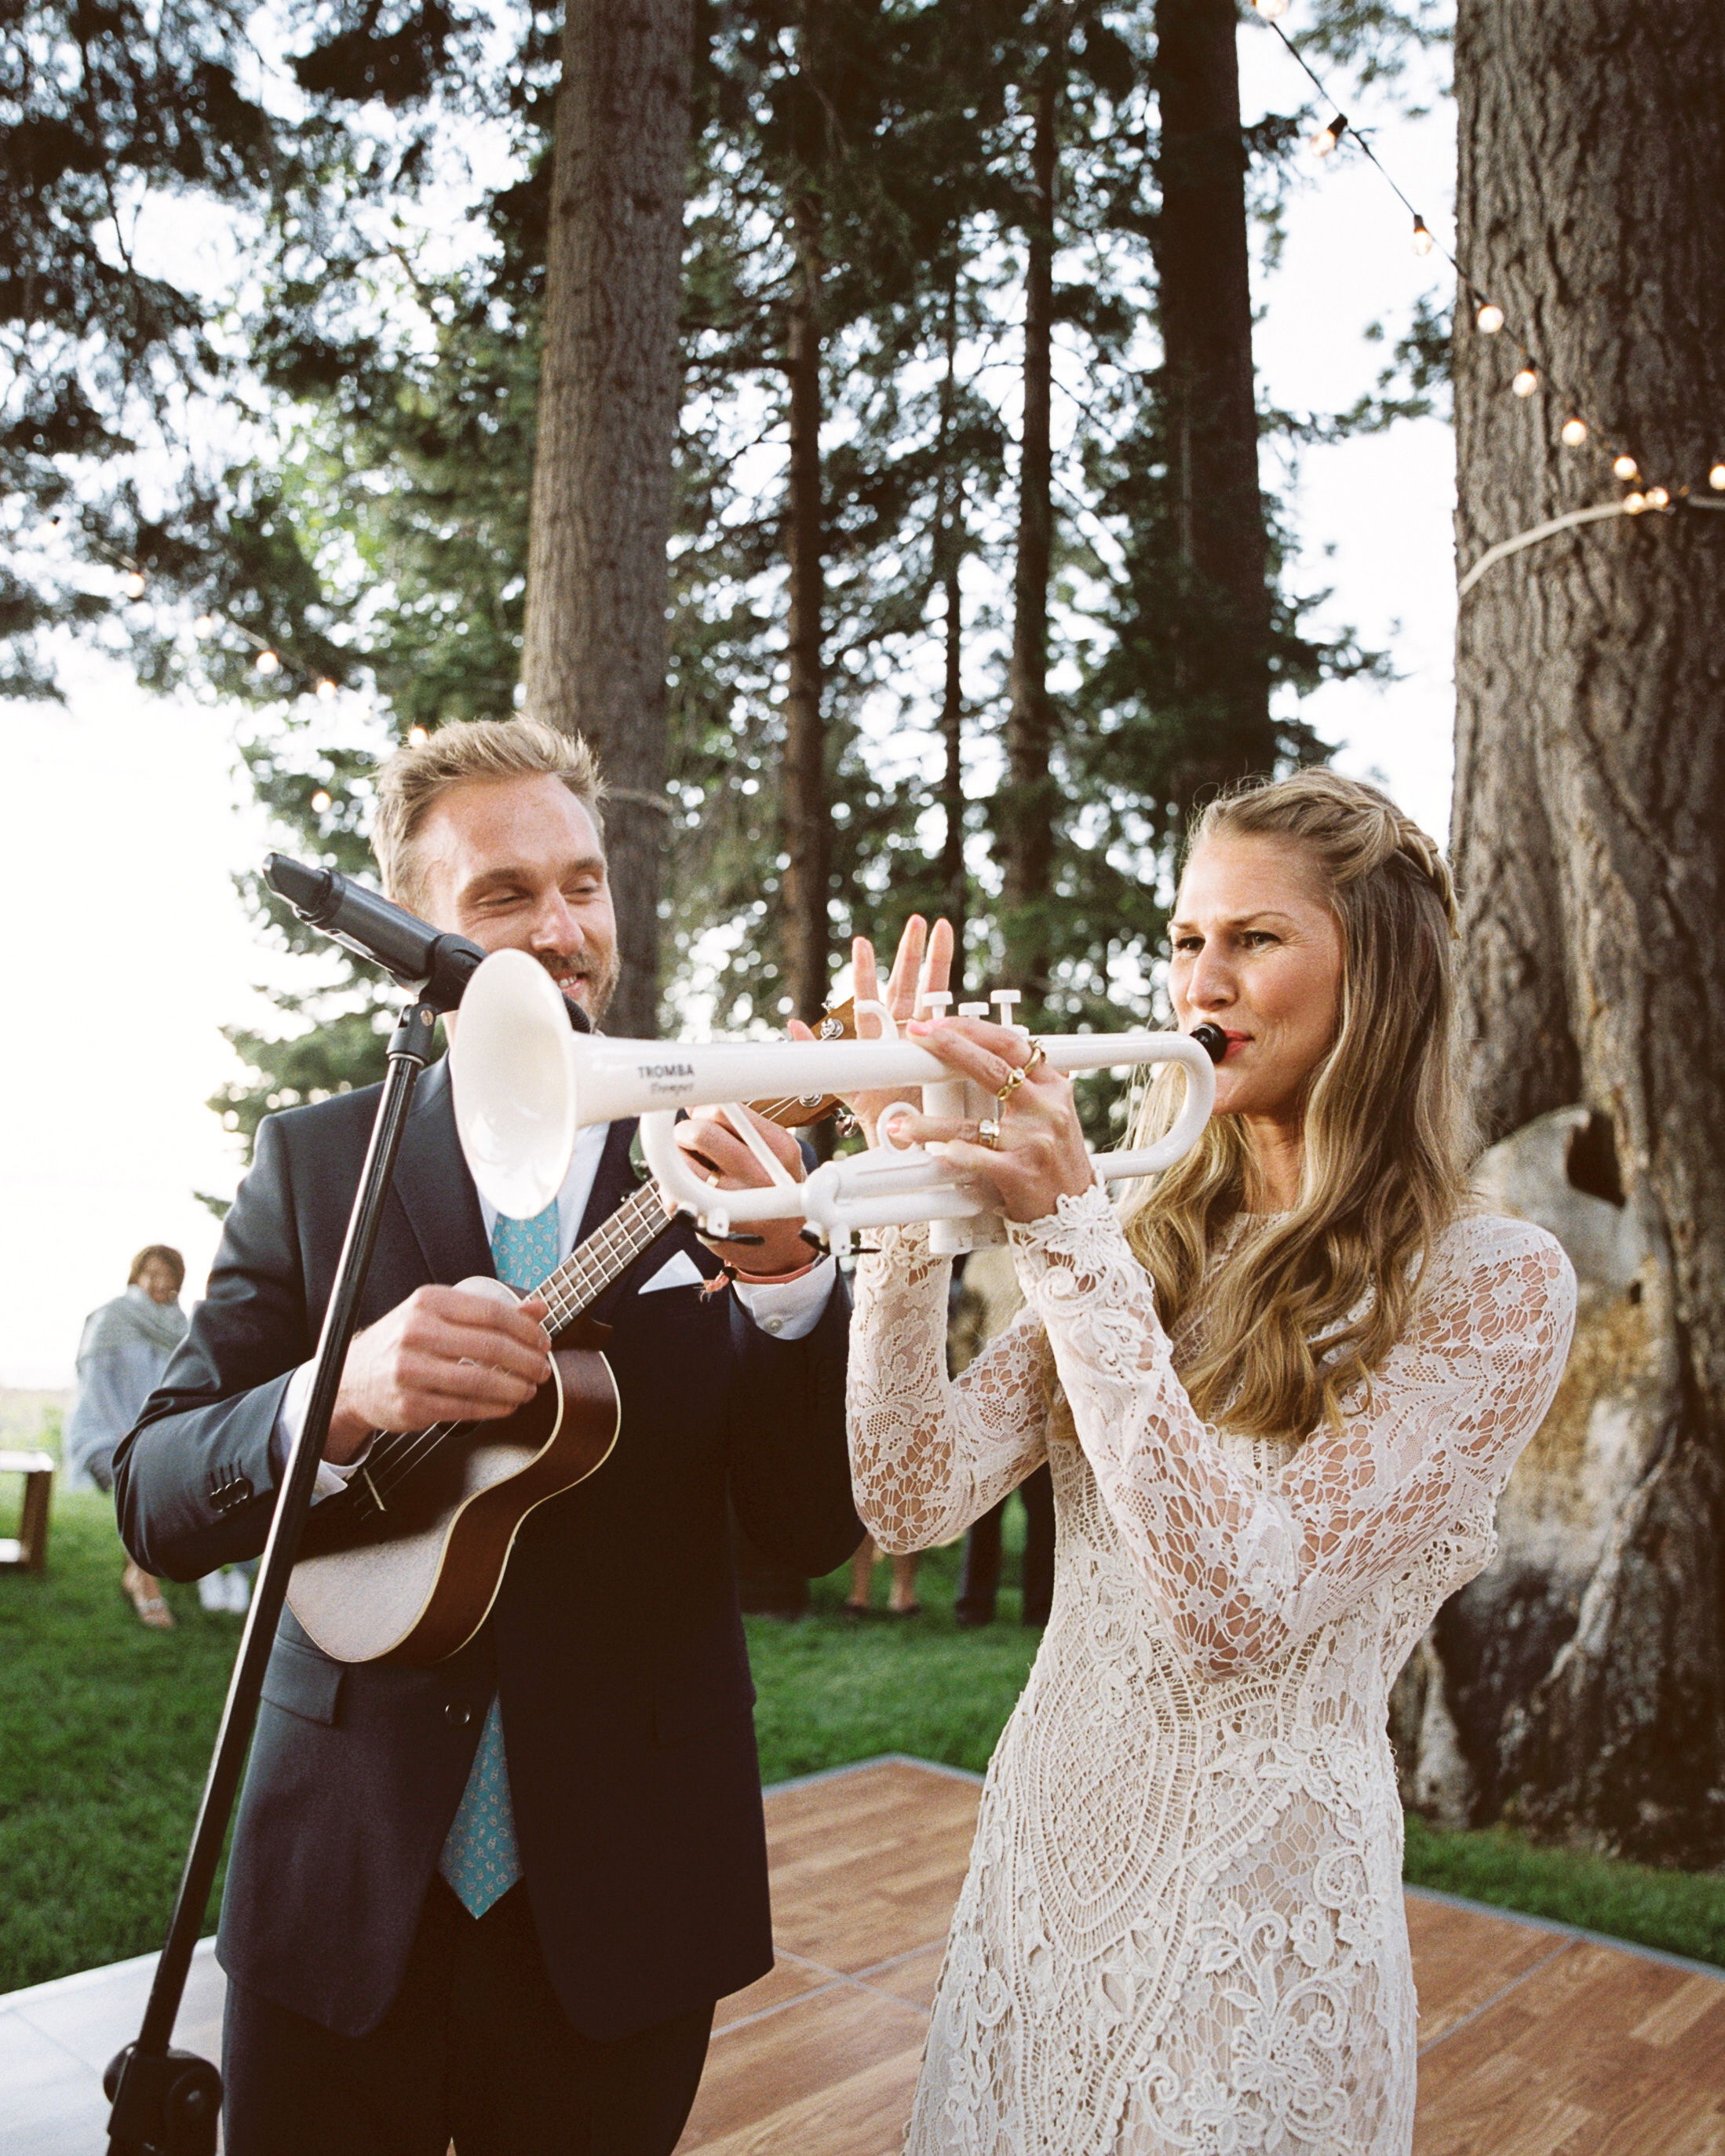 Is It Weird to Play Music During Your Ceremony?